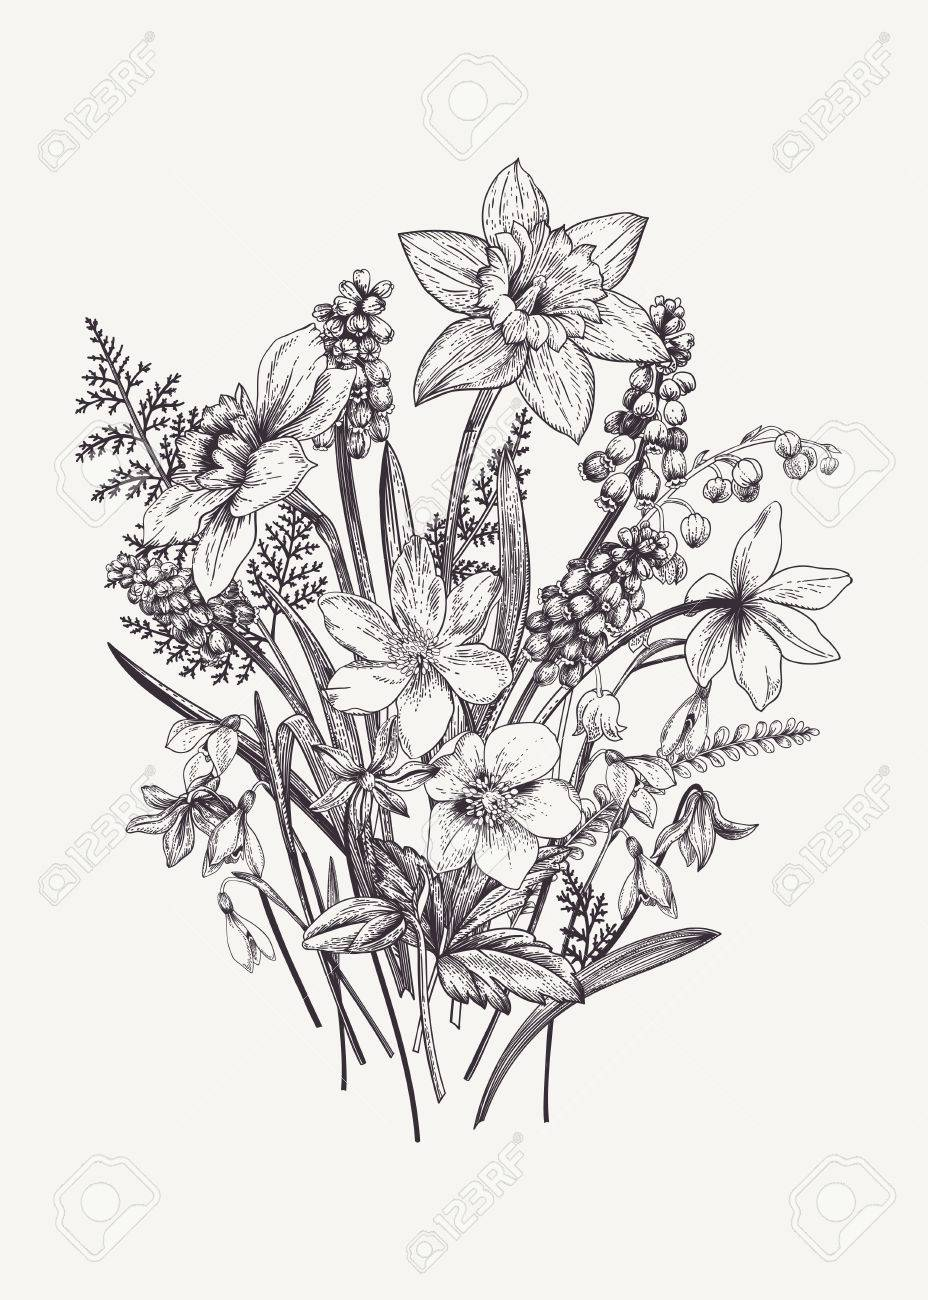 Bunch Of Early Spring Flowers Botanical Illustration Engraving